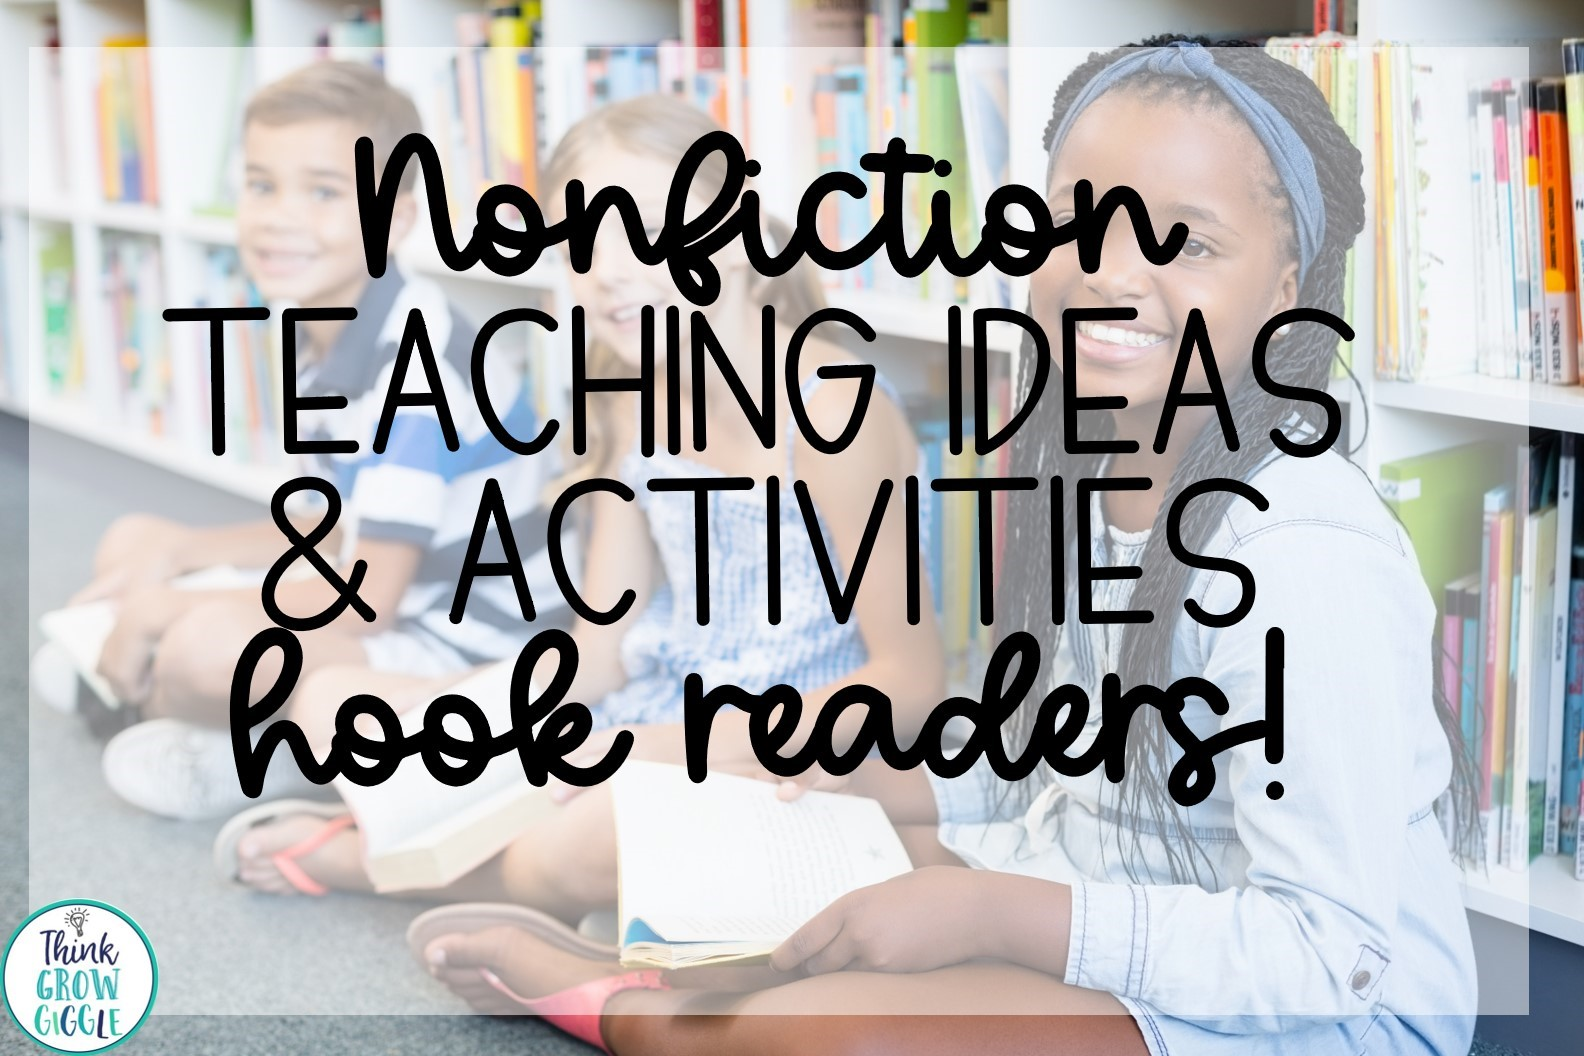 Nonfiction Teaching Ideas and Activities to Hook Readers